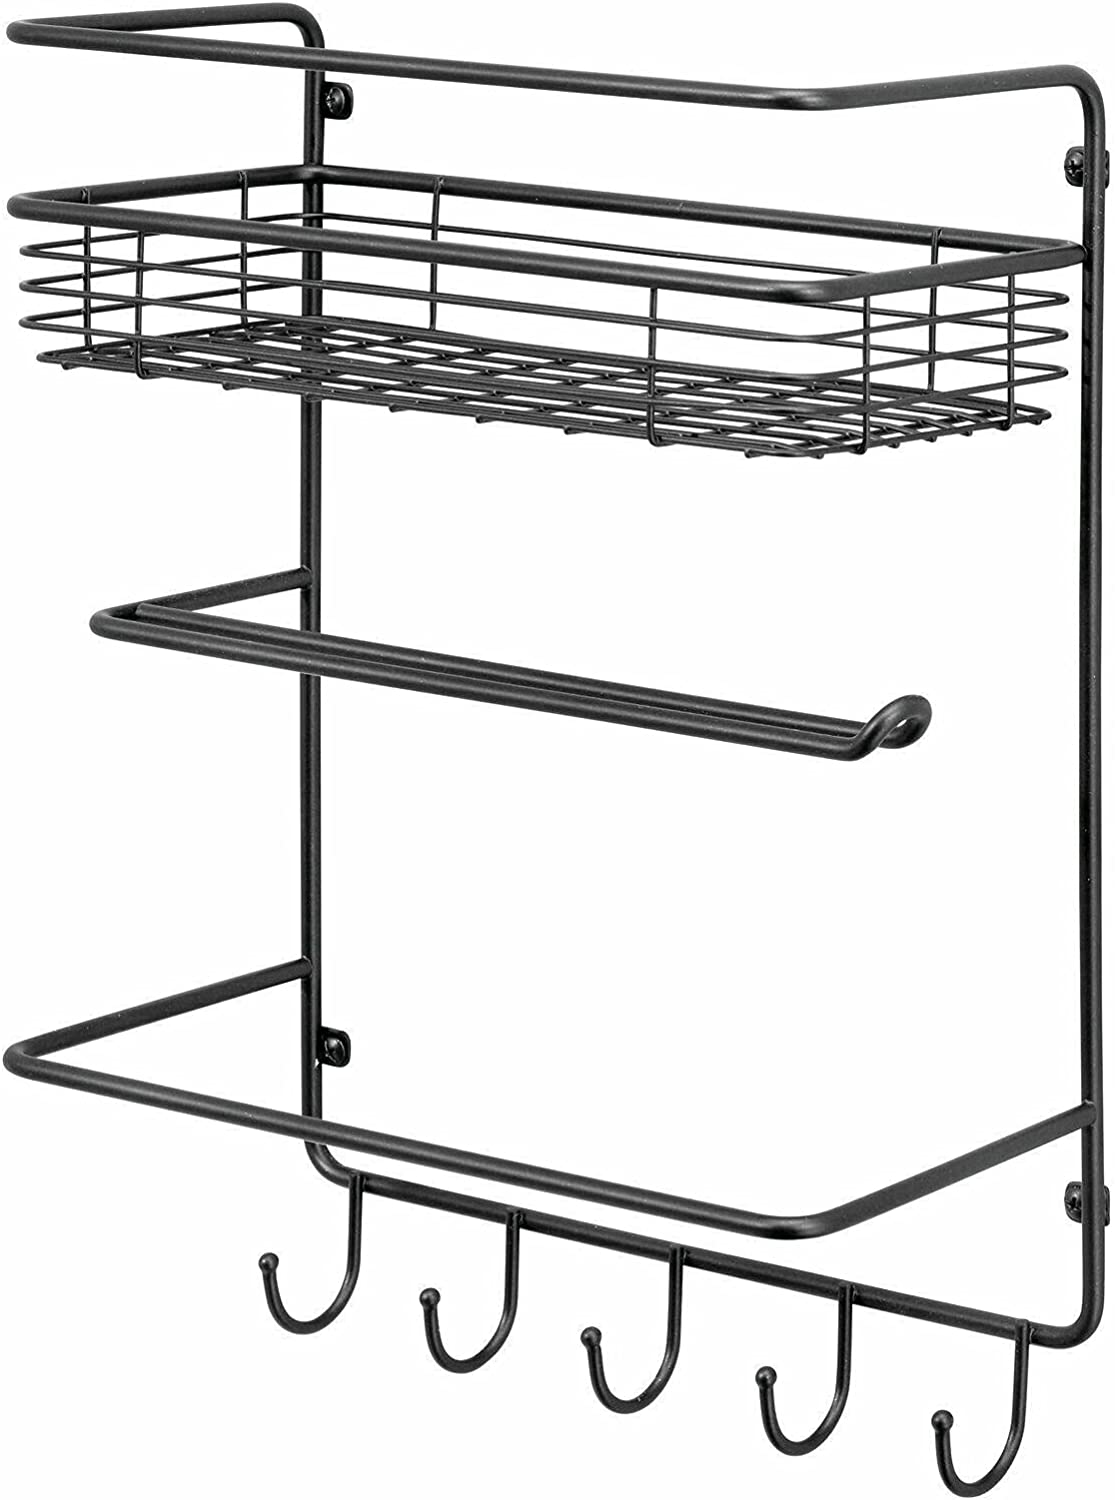 Metal Wall Mount Paper Towel Reservation Holder Storage Memphis Mall with Shelf Hooks -